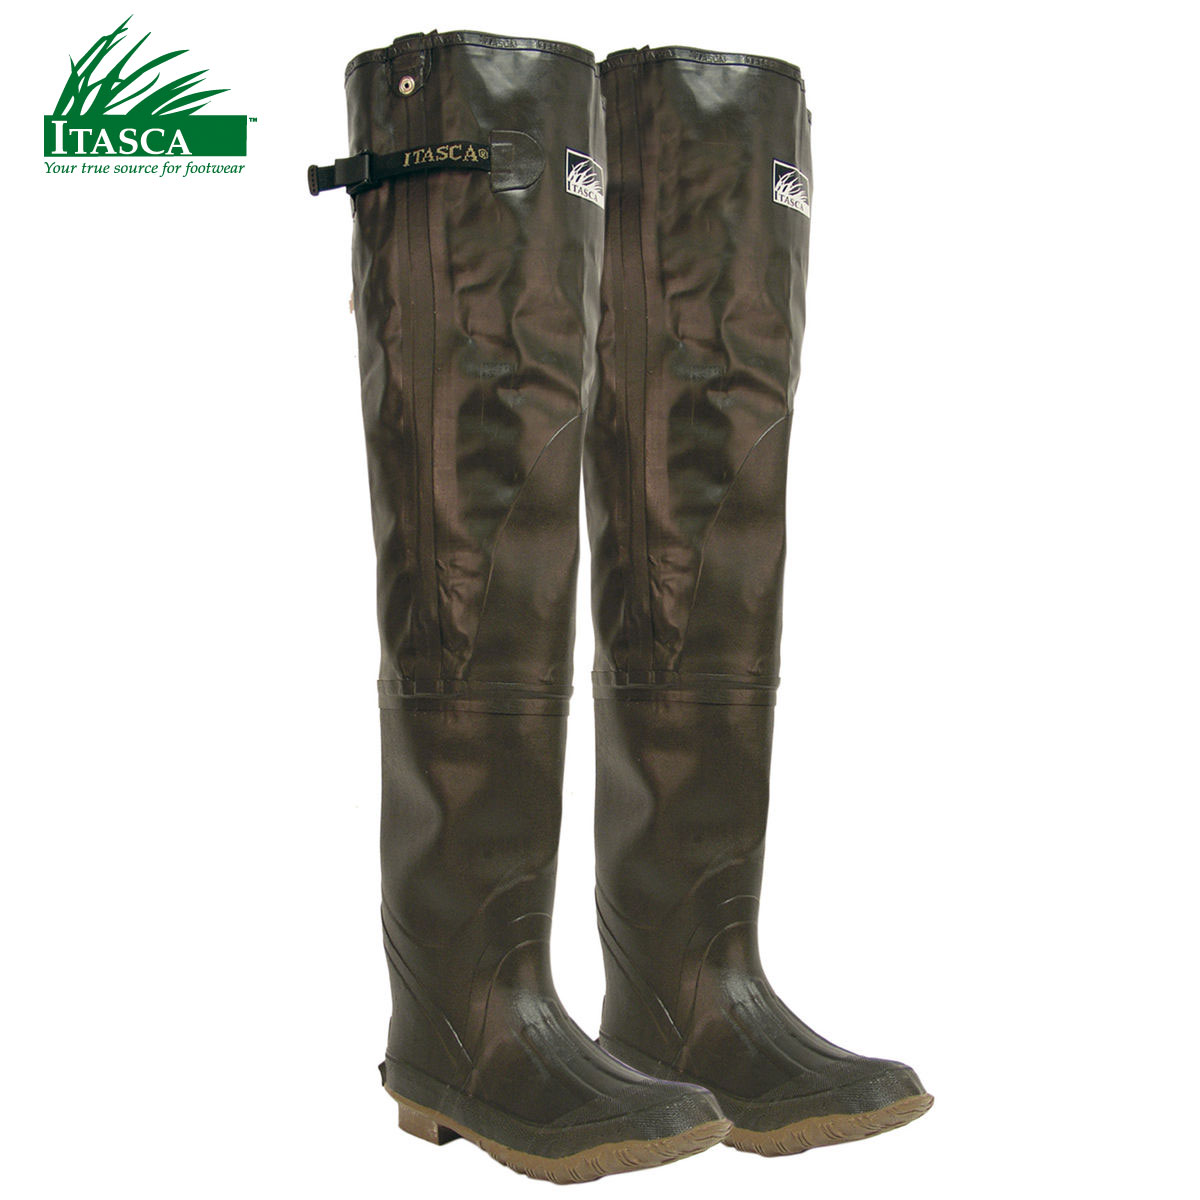 Itasca Rubber Men's Hip Waders (11)- Brown